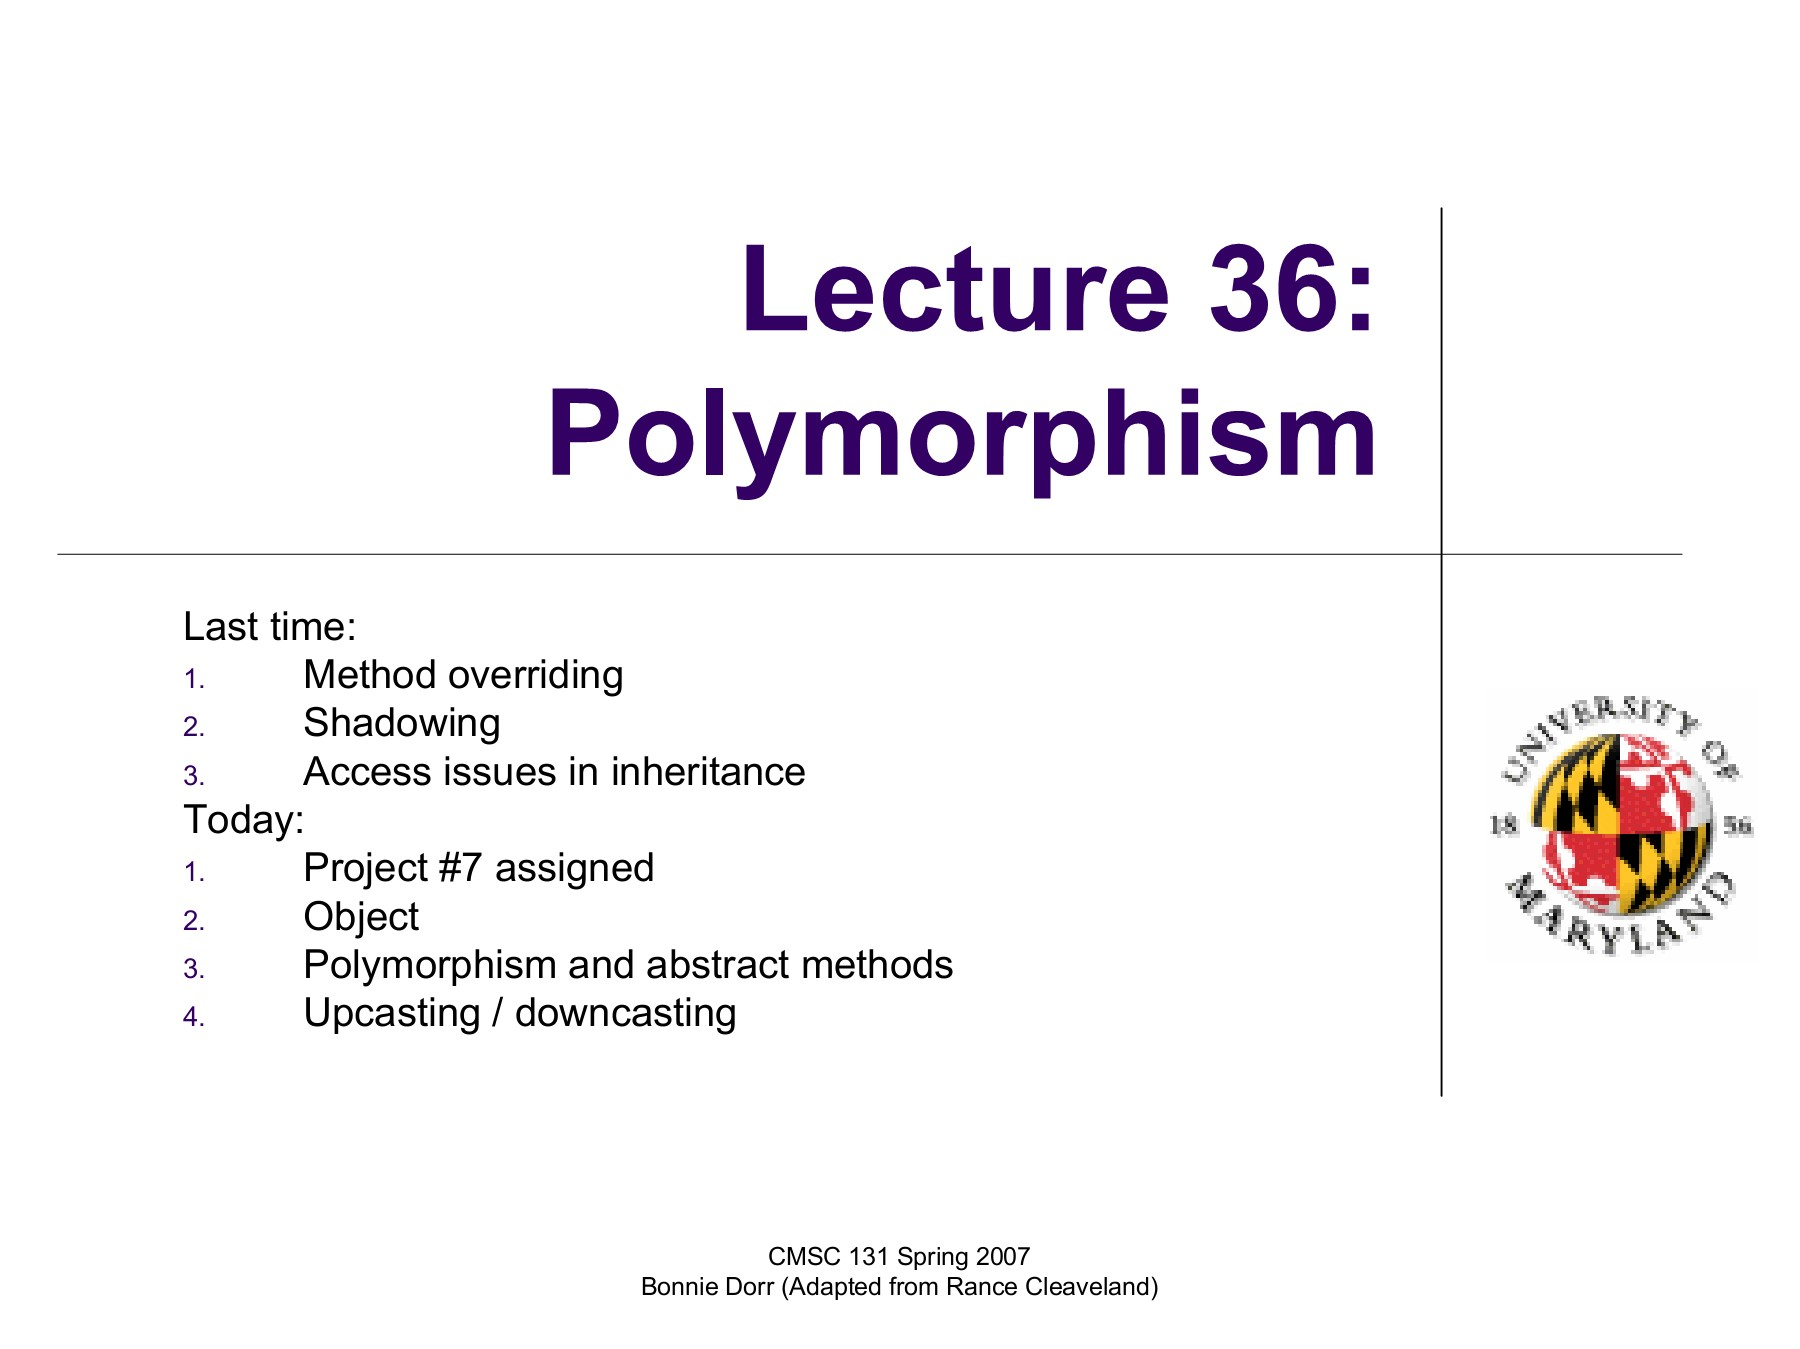 Lecture 36: Polymorphism